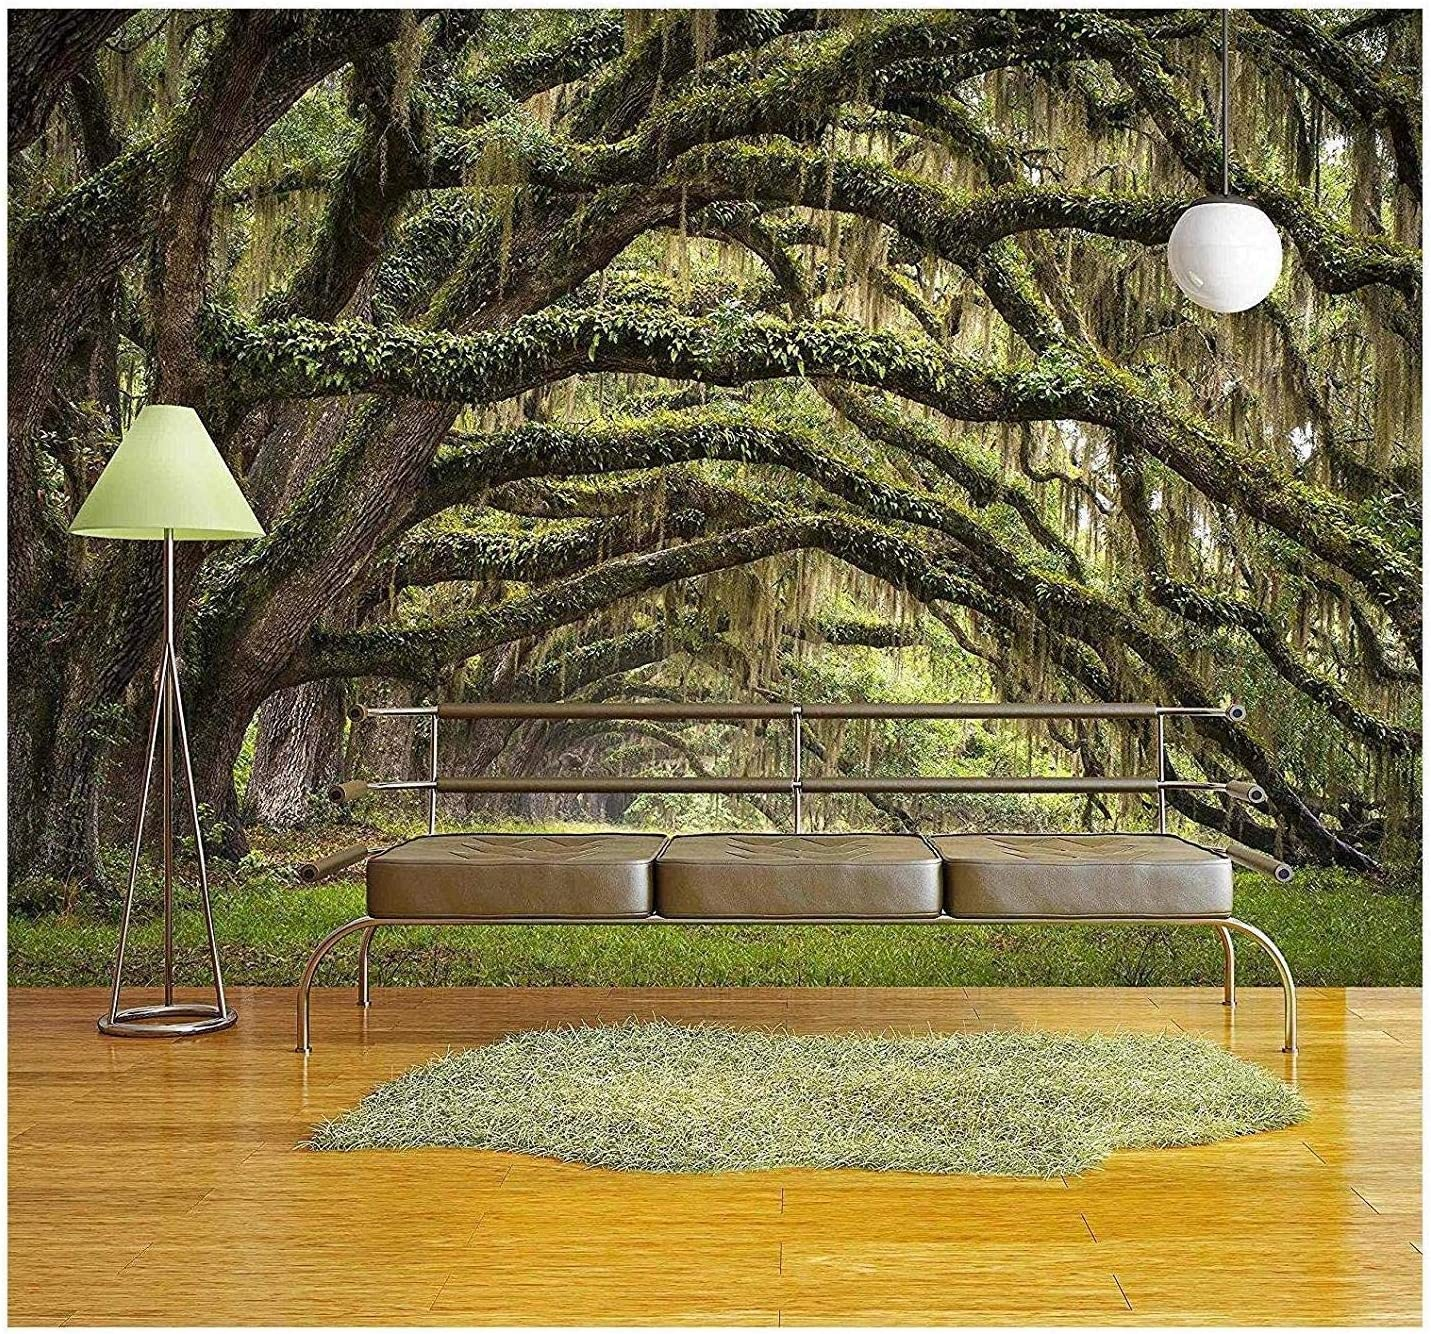 wall26 - Oaks Avenue Charleston Sc Plantation Live Oak Trees Forest Landscape in Ace Basin South Carolina Lowcountry - Removable Wall Mural | Self-Adhesive Large Wallpaper - 100x144 inches